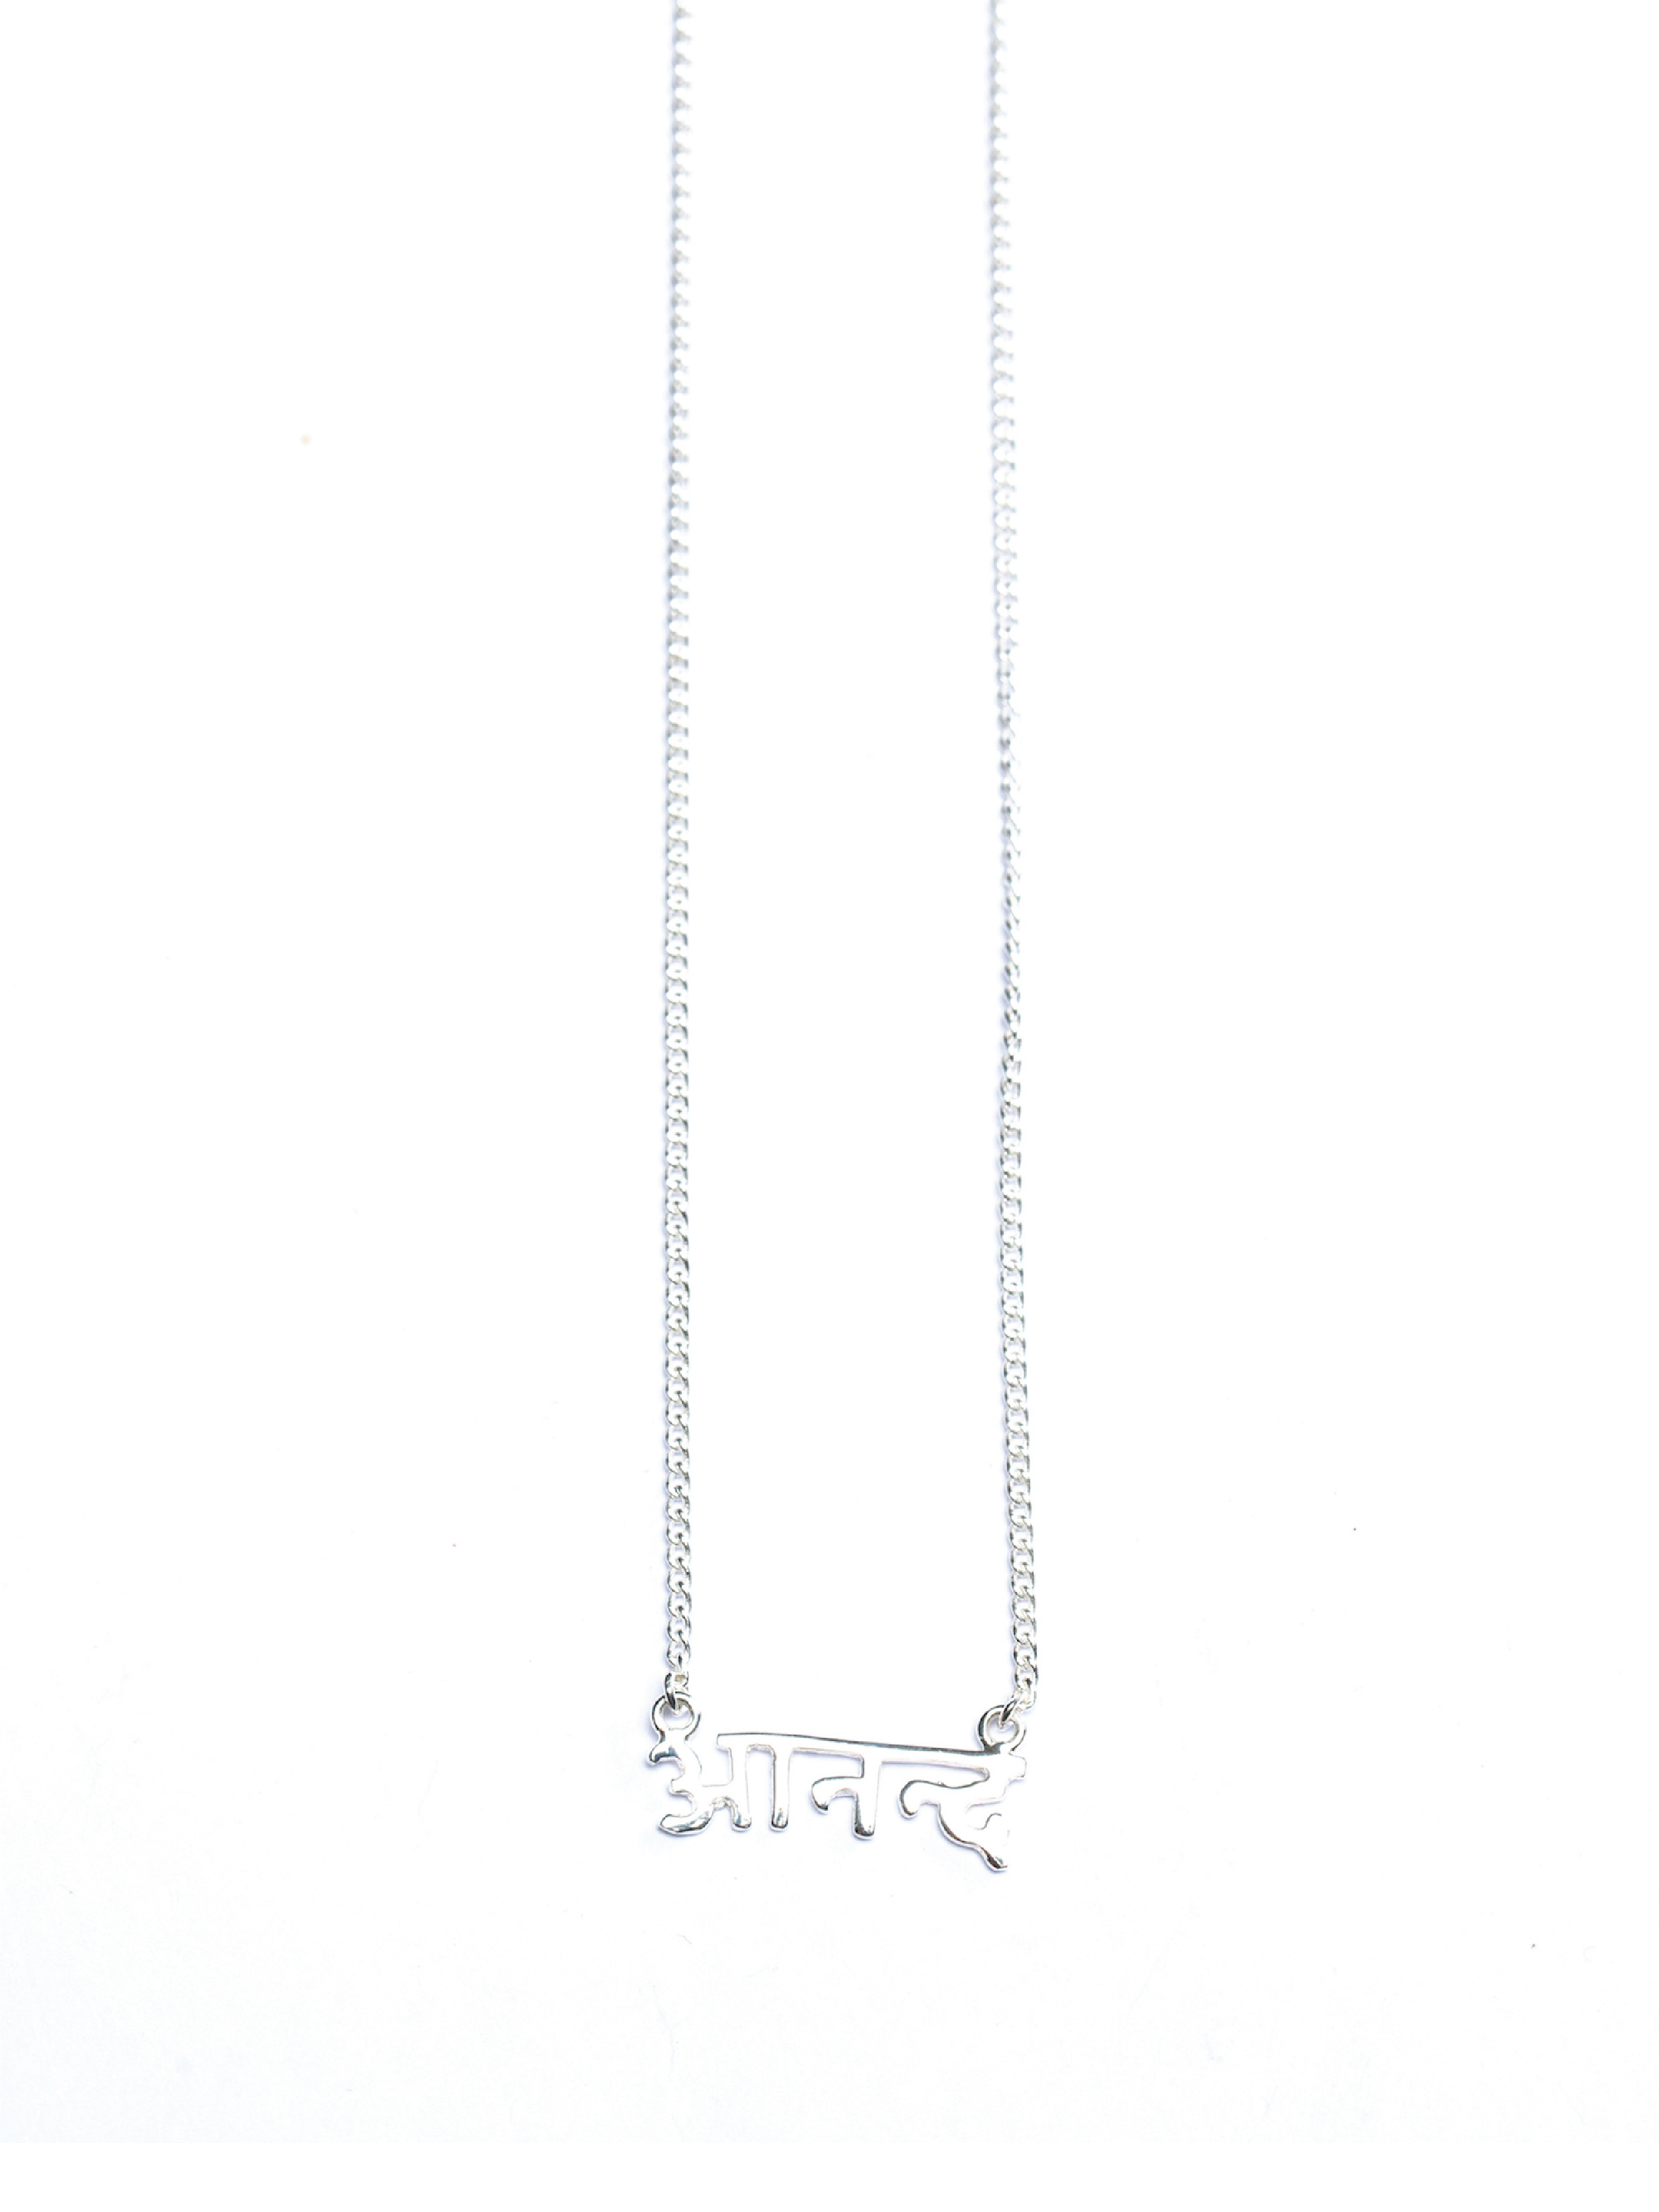 Happiness - Sanskrit Necklace (Silver)